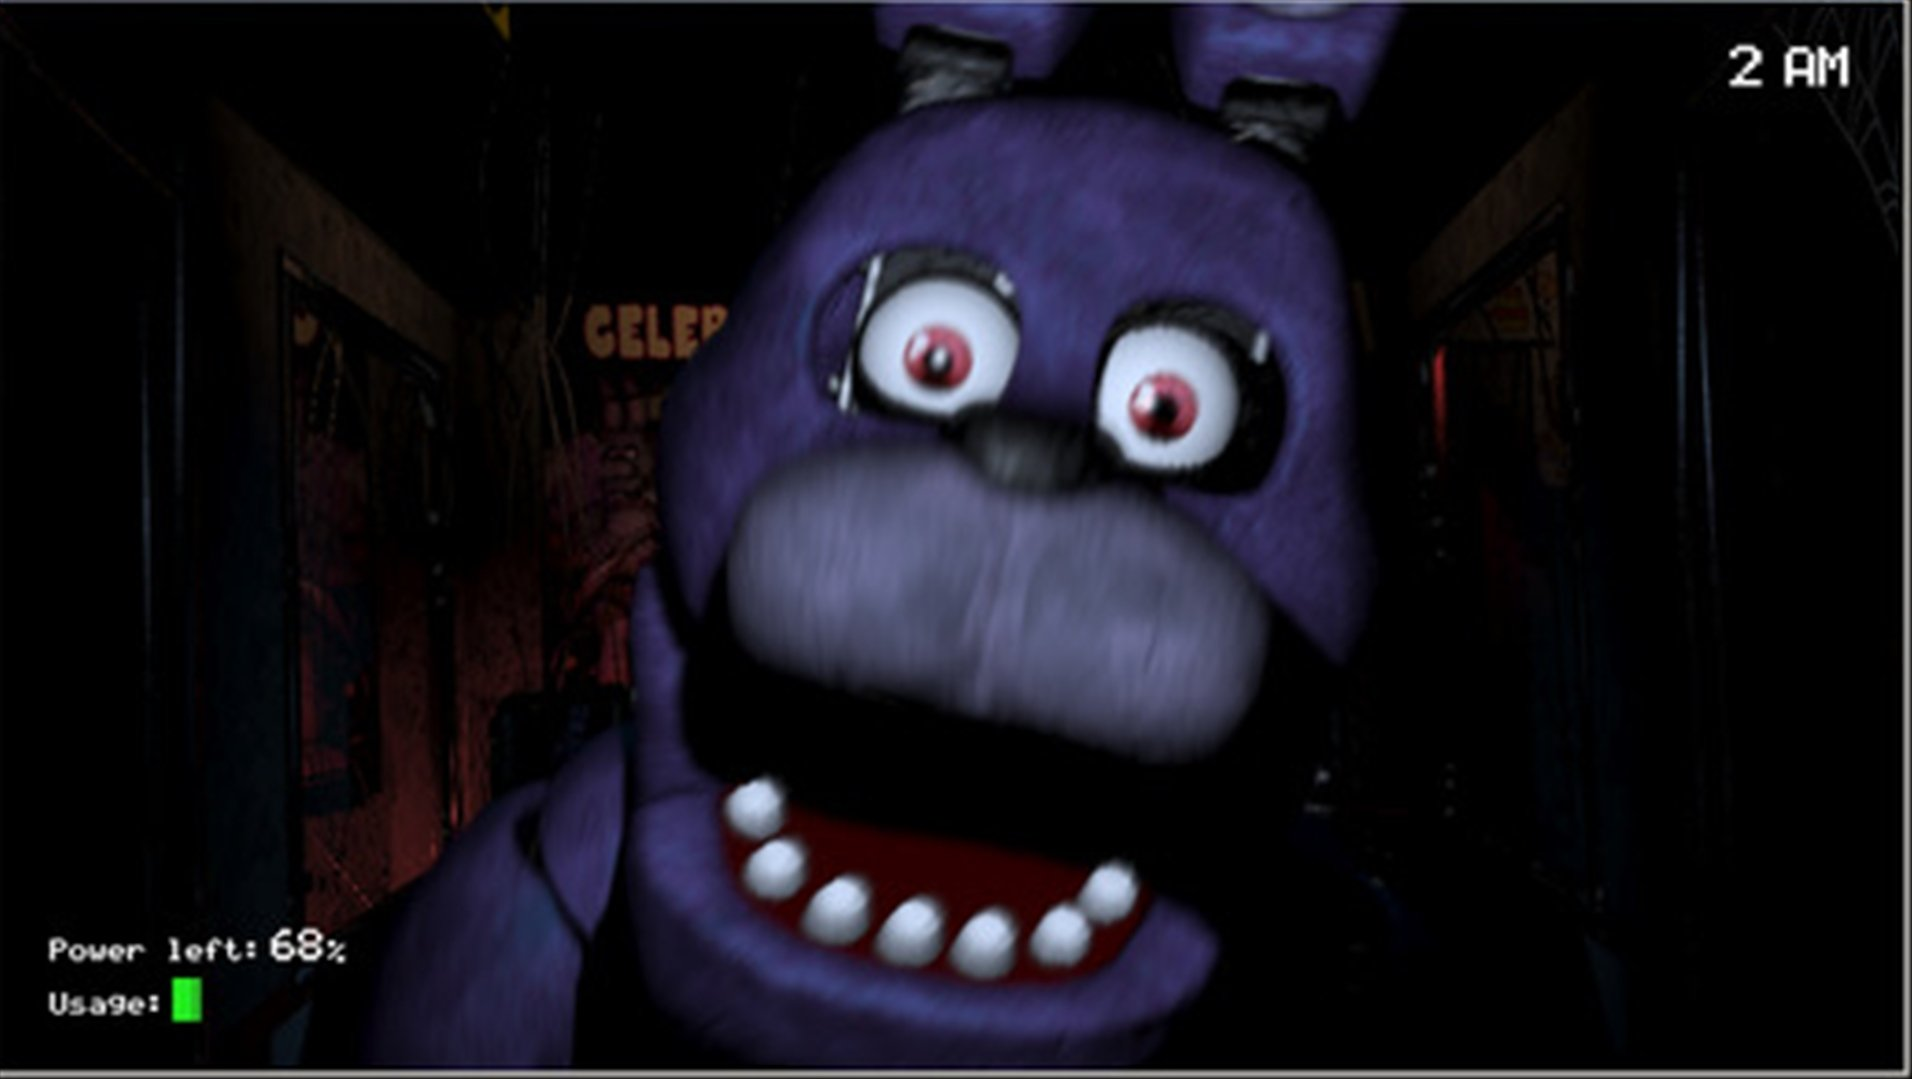 Five Nights at Freddy's - Download for iPhone Free